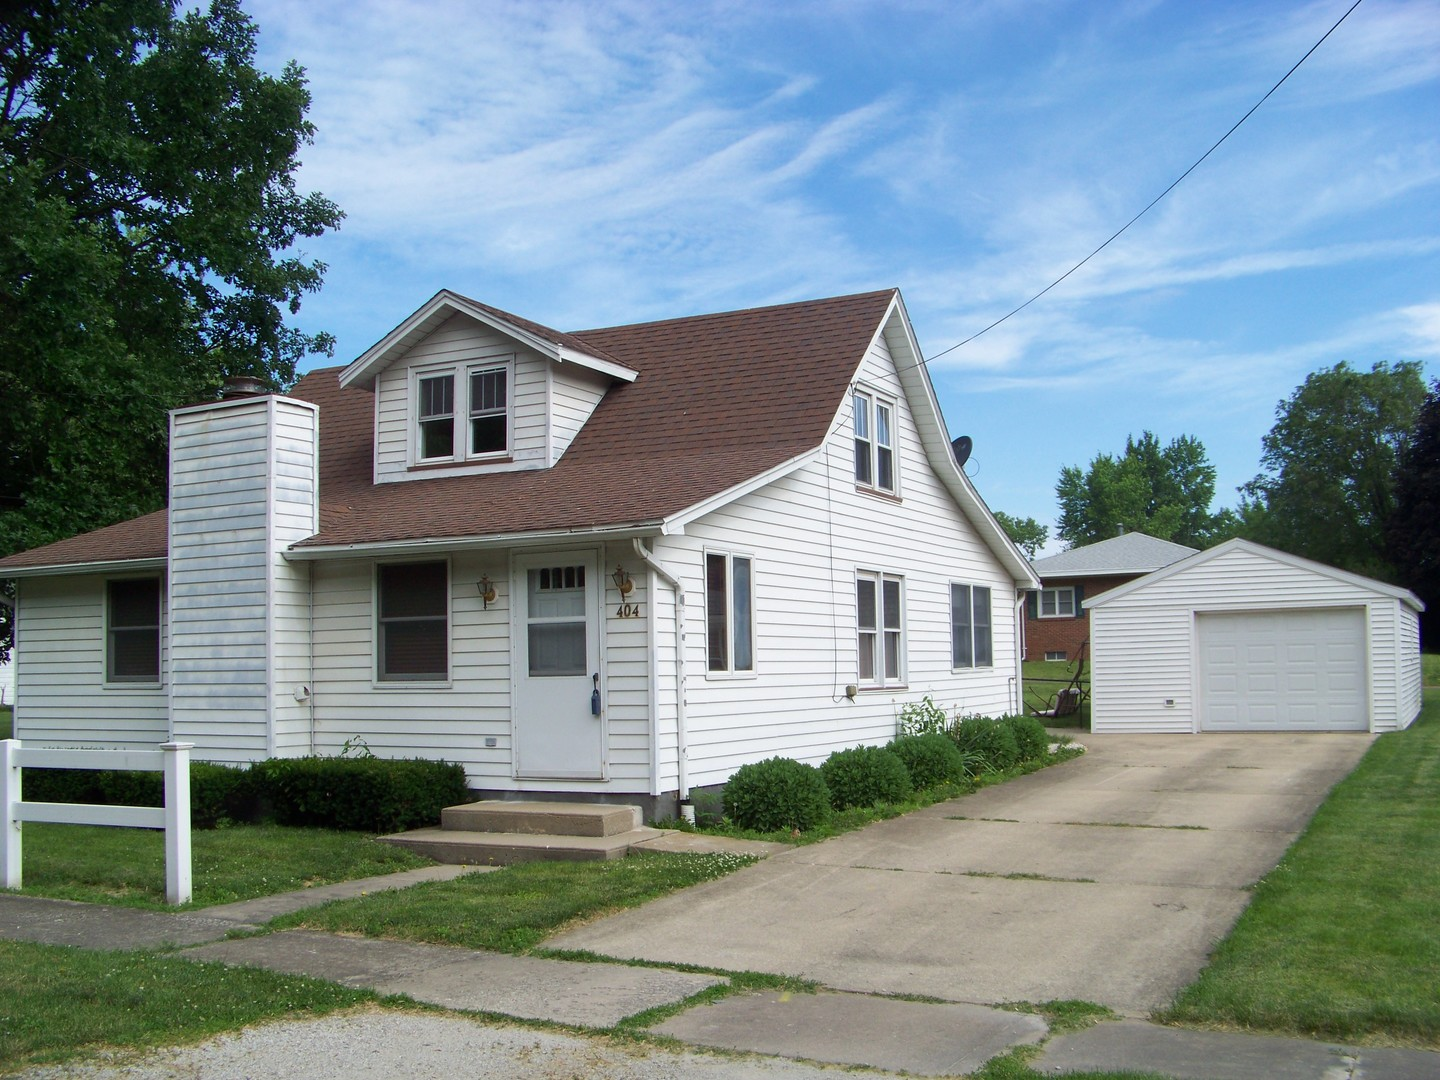 404 West Oglesby, Monticello, Illinois, 61856